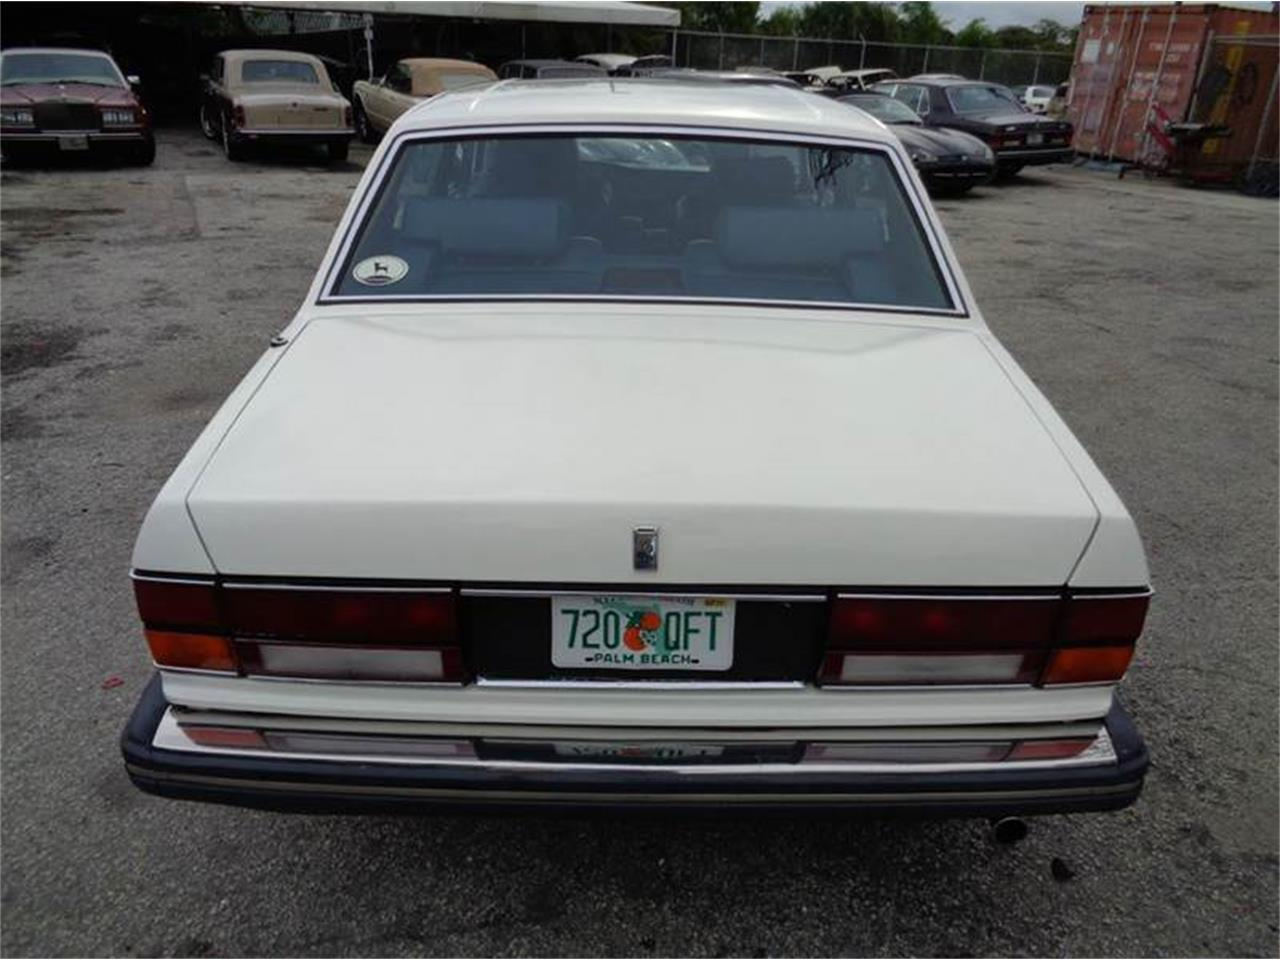 Large Picture of '87 Rolls-Royce Silver Spirit - $19,950.00 - FWHT